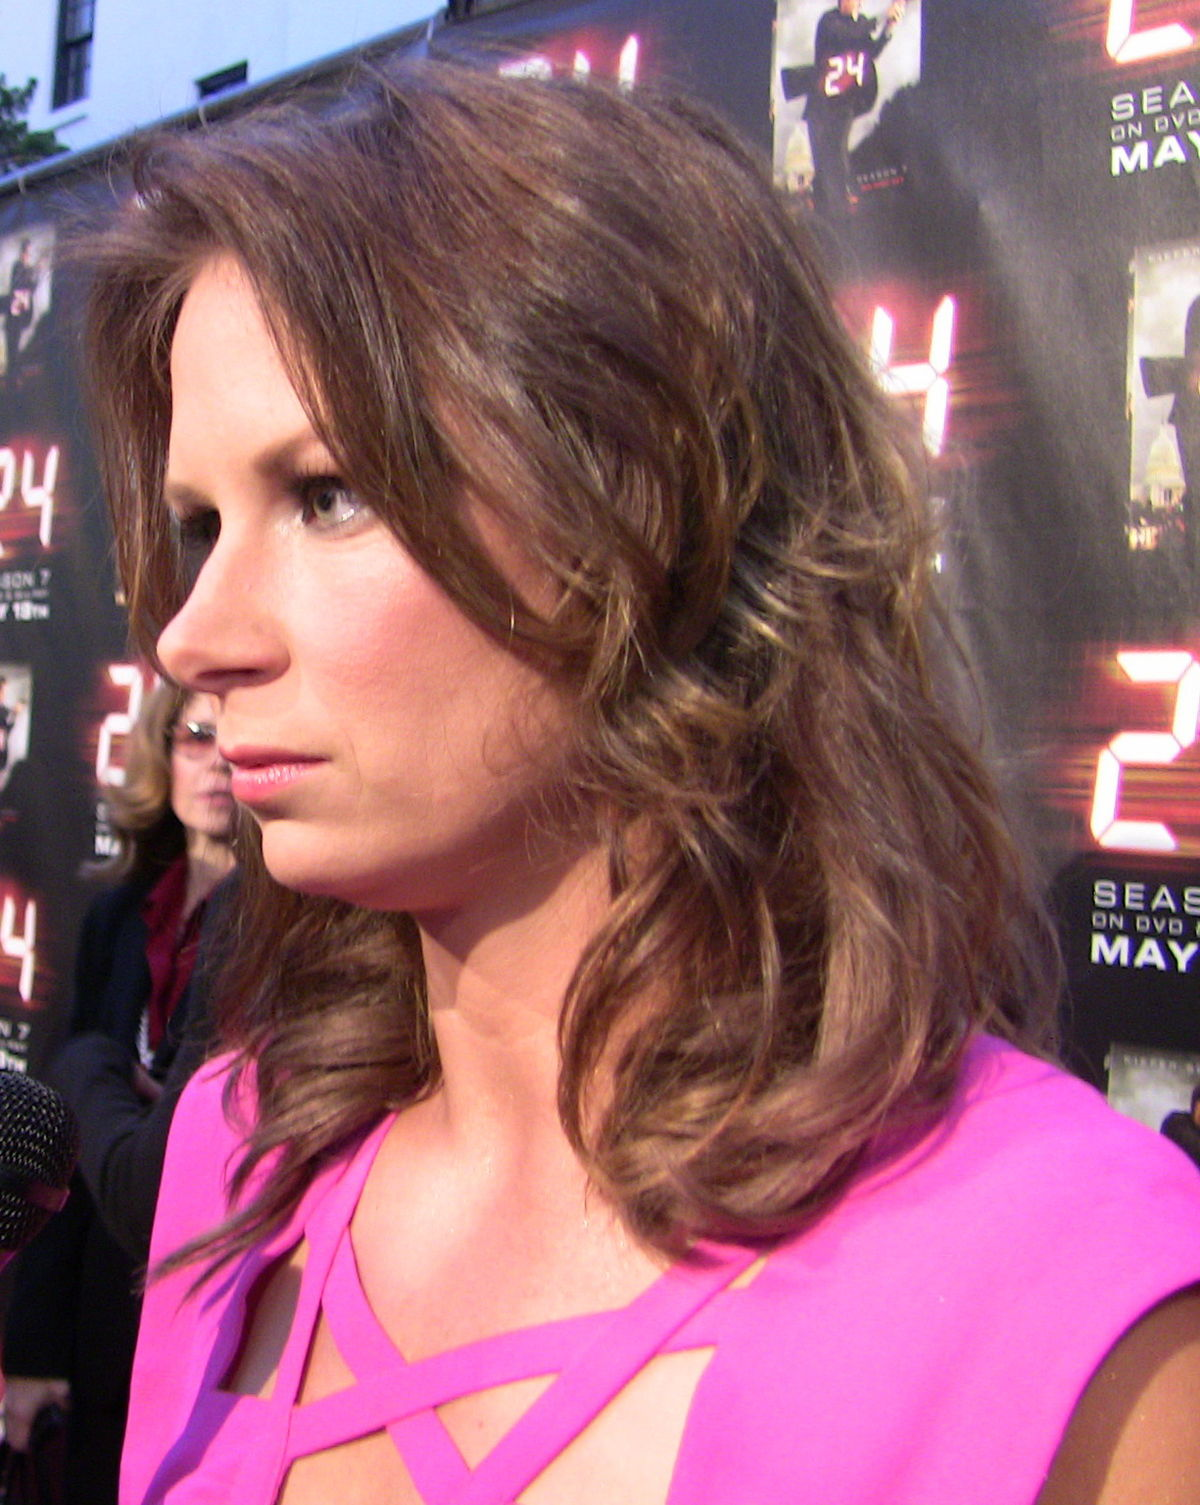 porno Mary Rajskub photo Lynn